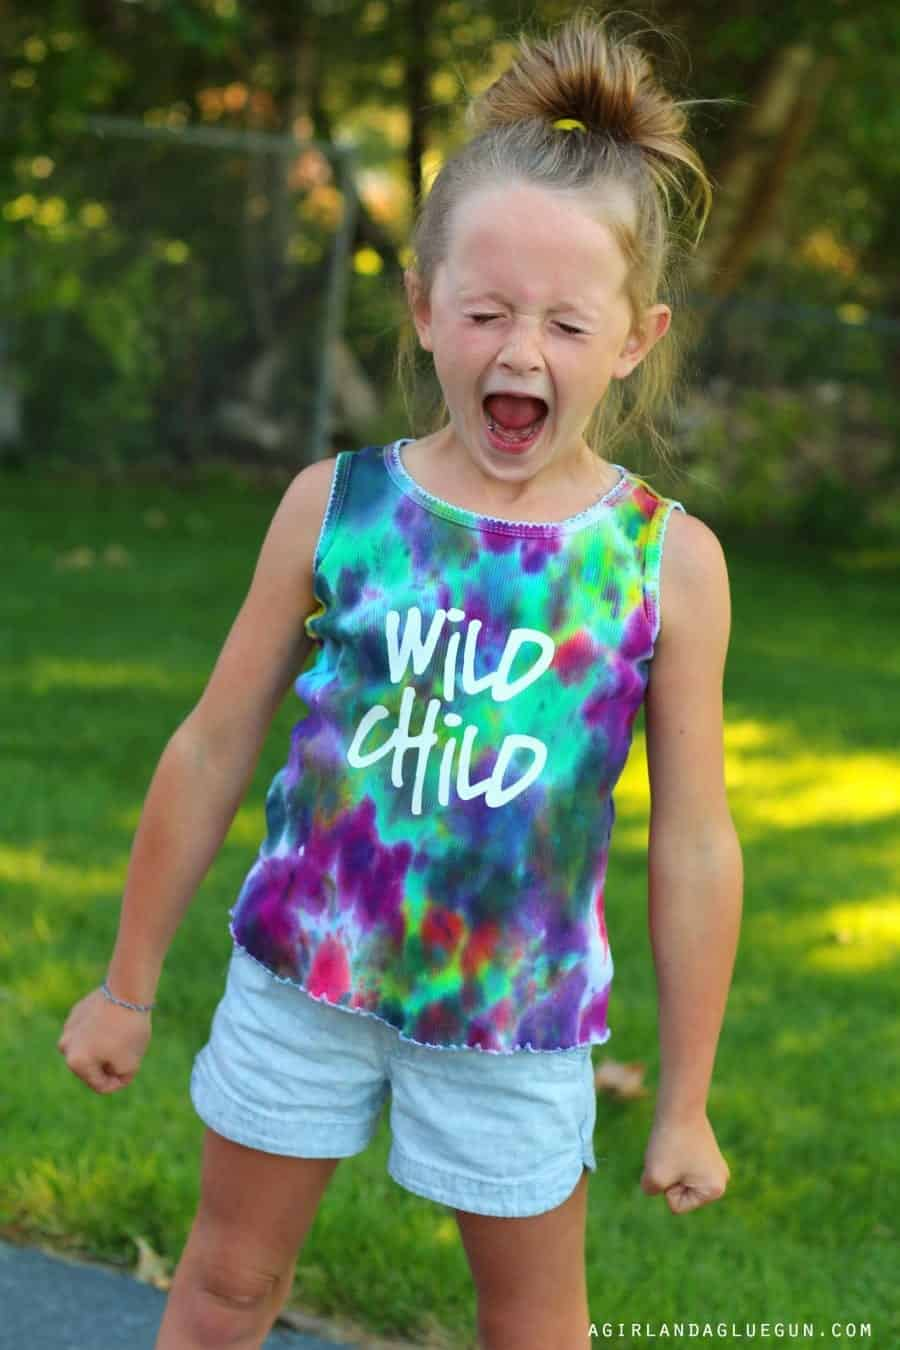 wild child iron on t-shirt vinyl